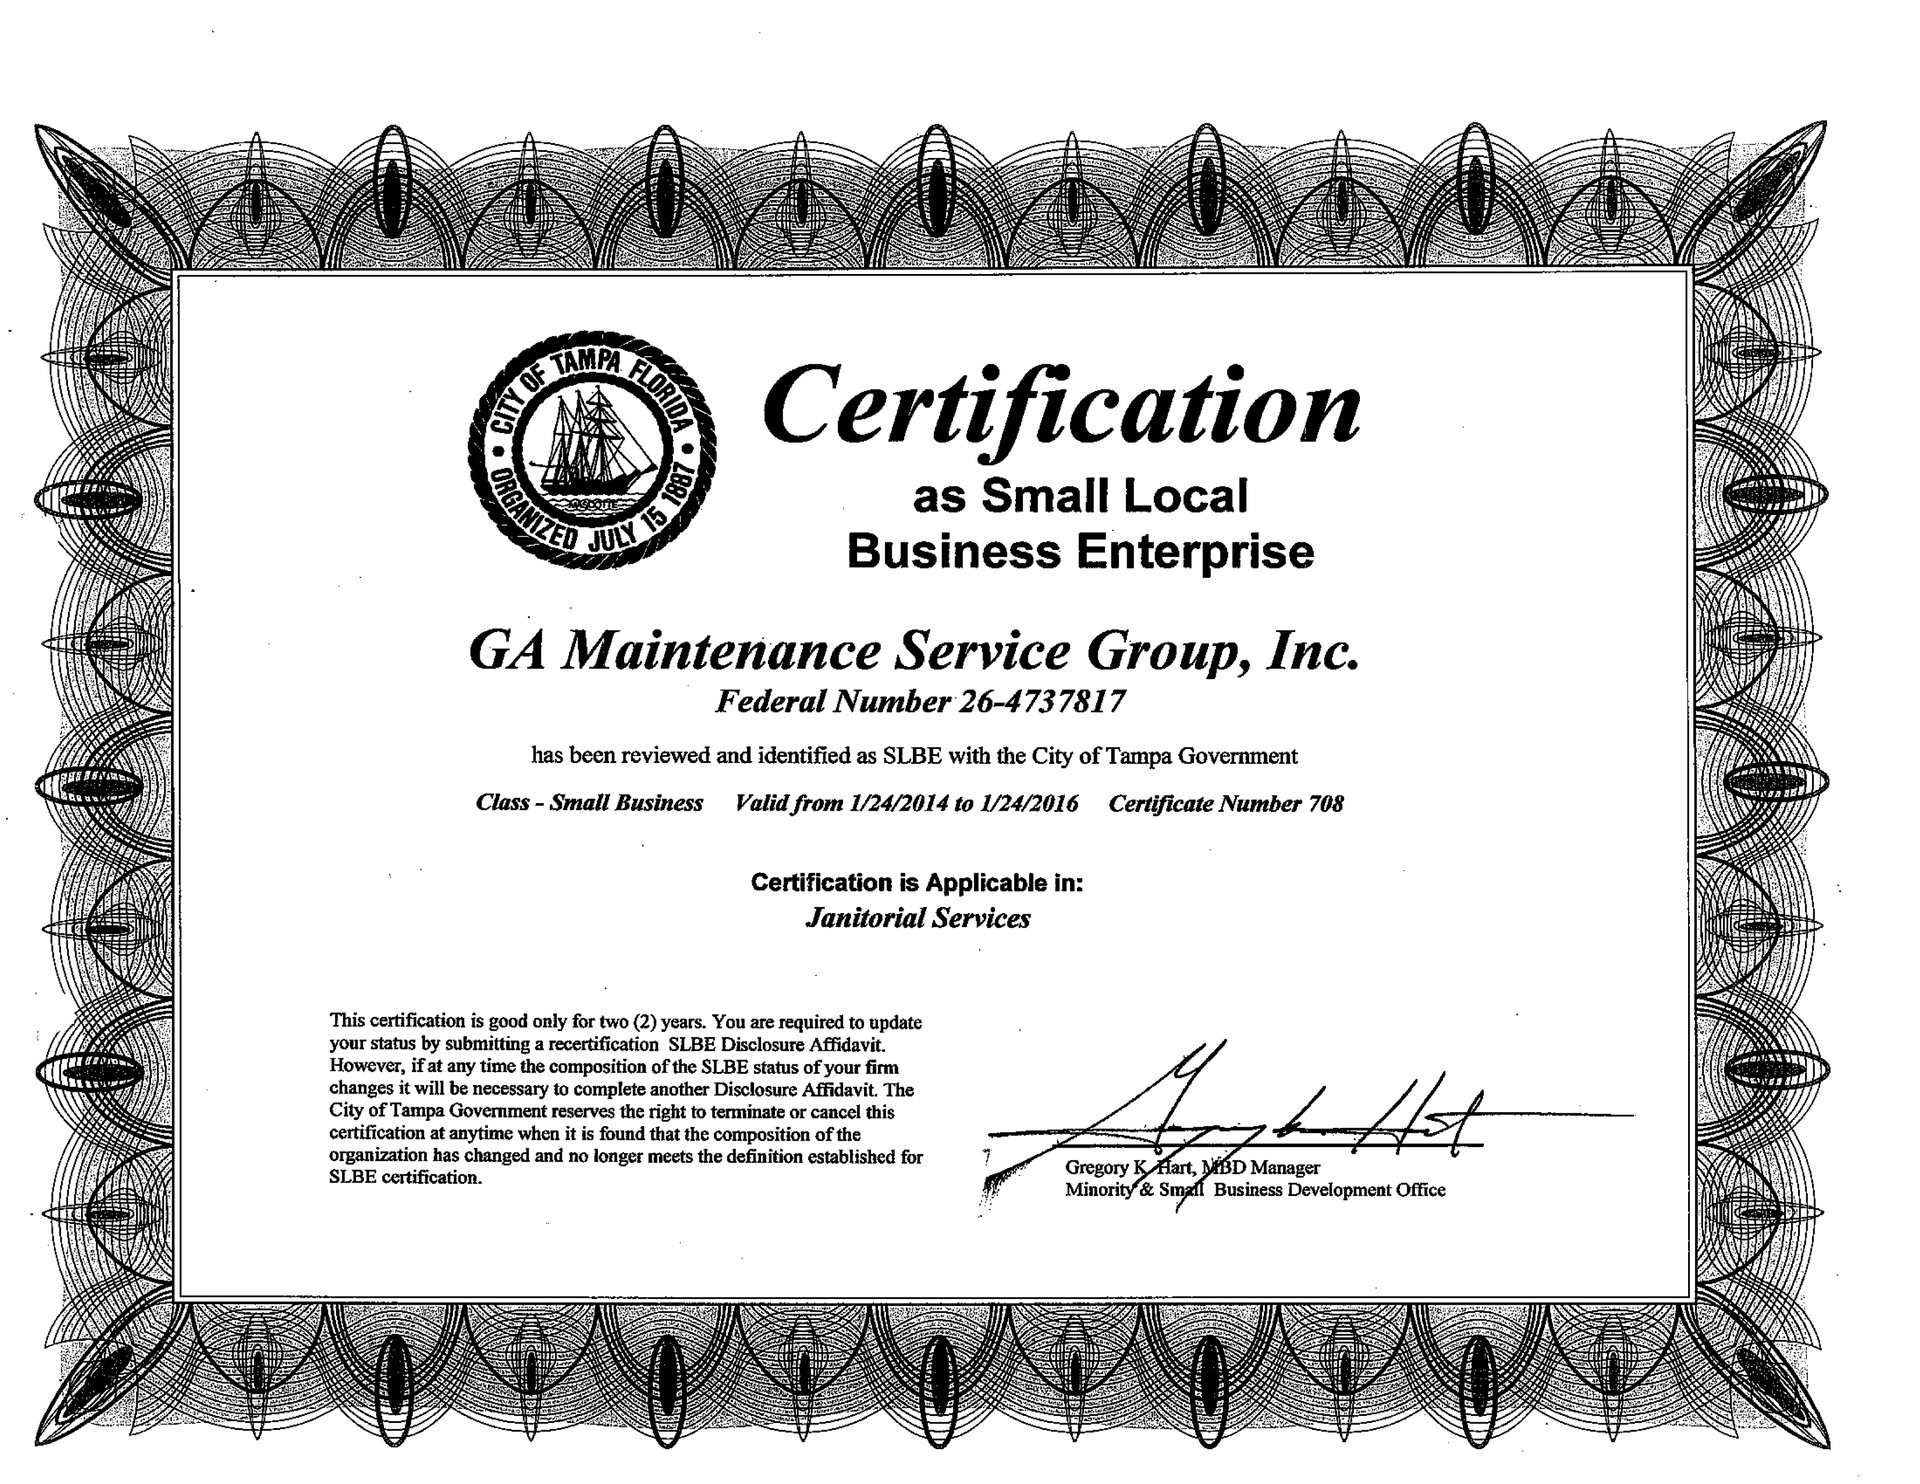 CITY OF TAMPA CERTIFICATION.jpg